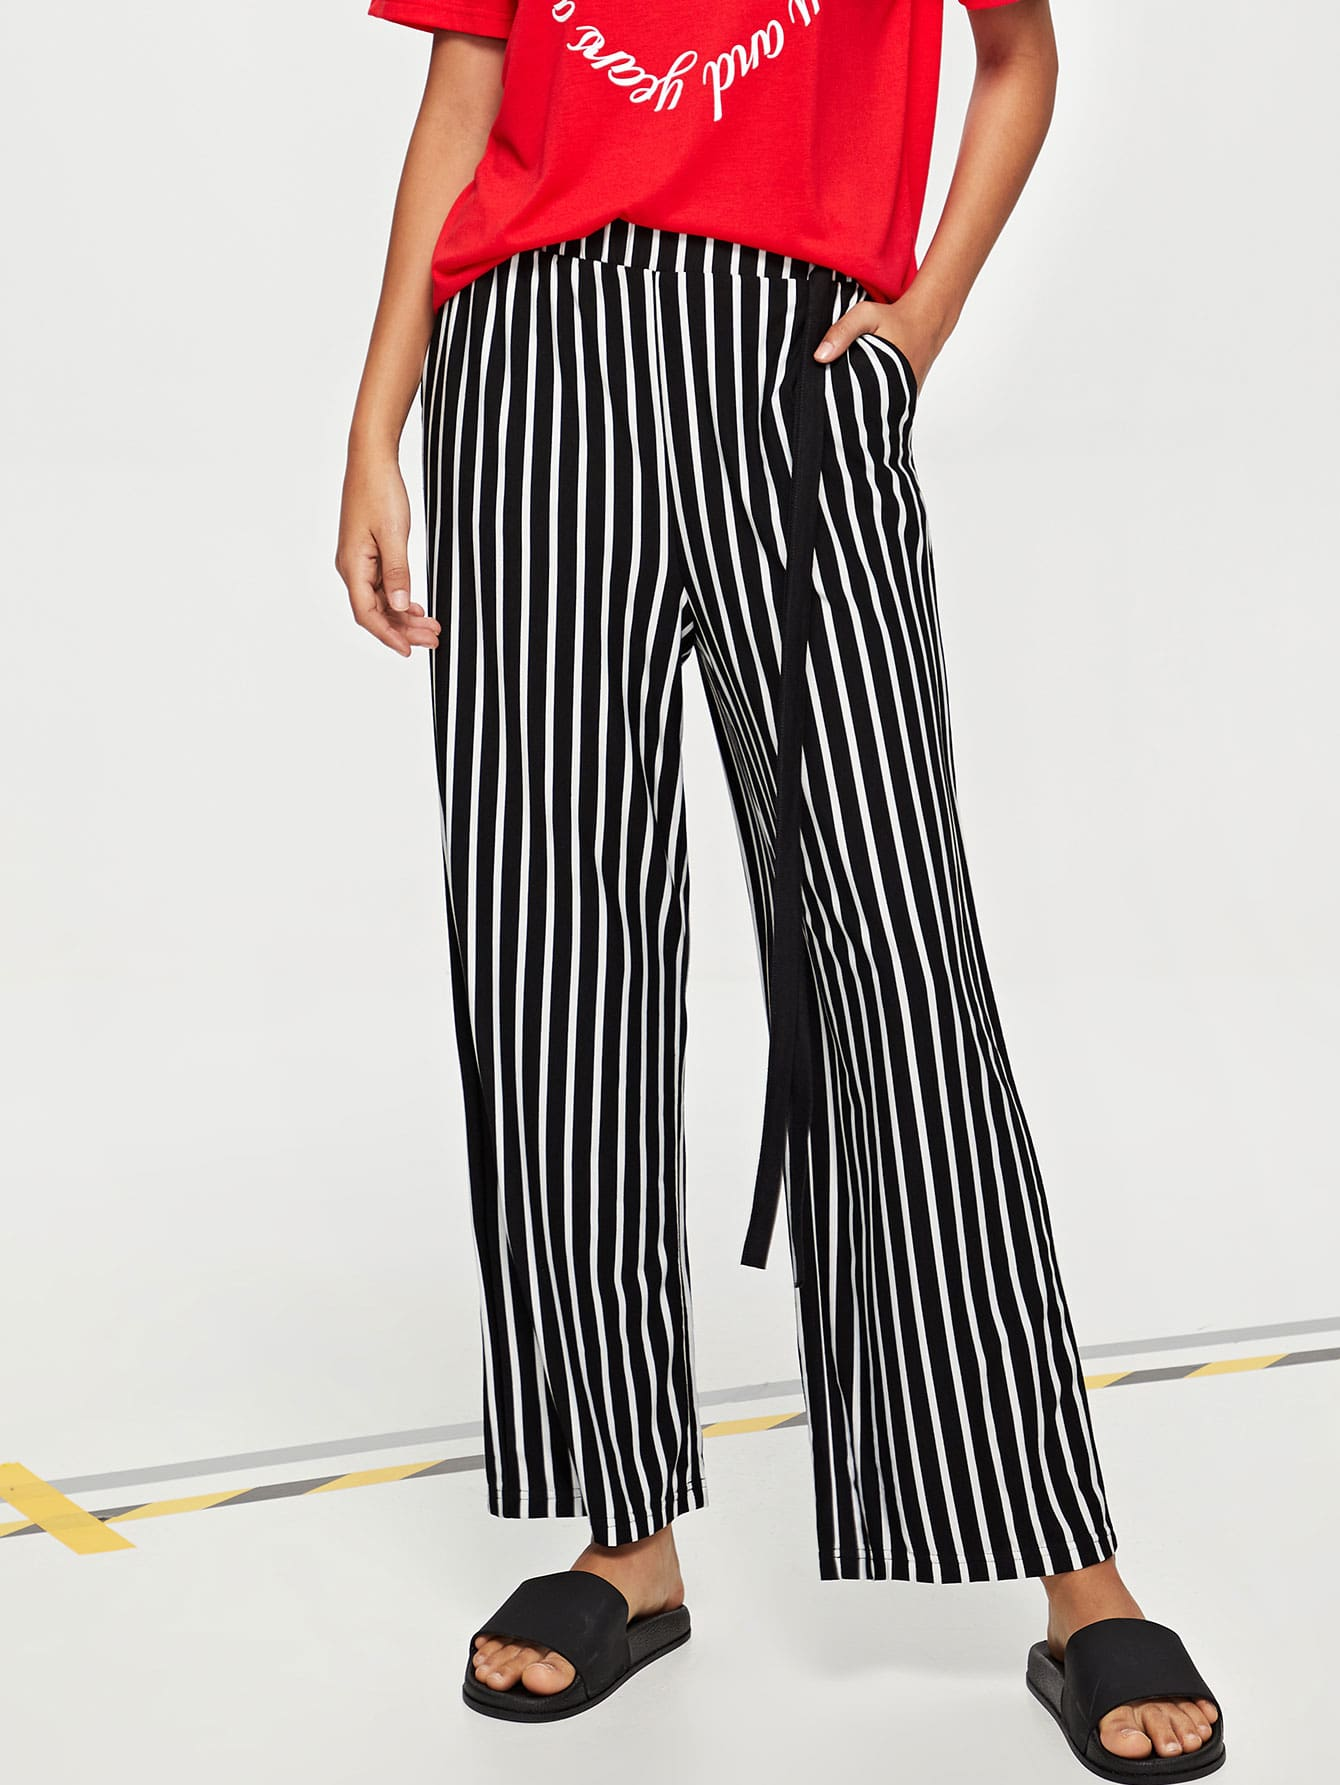 Elastic Waist Striped Wide Leg Pants kids elastic waist striped pants